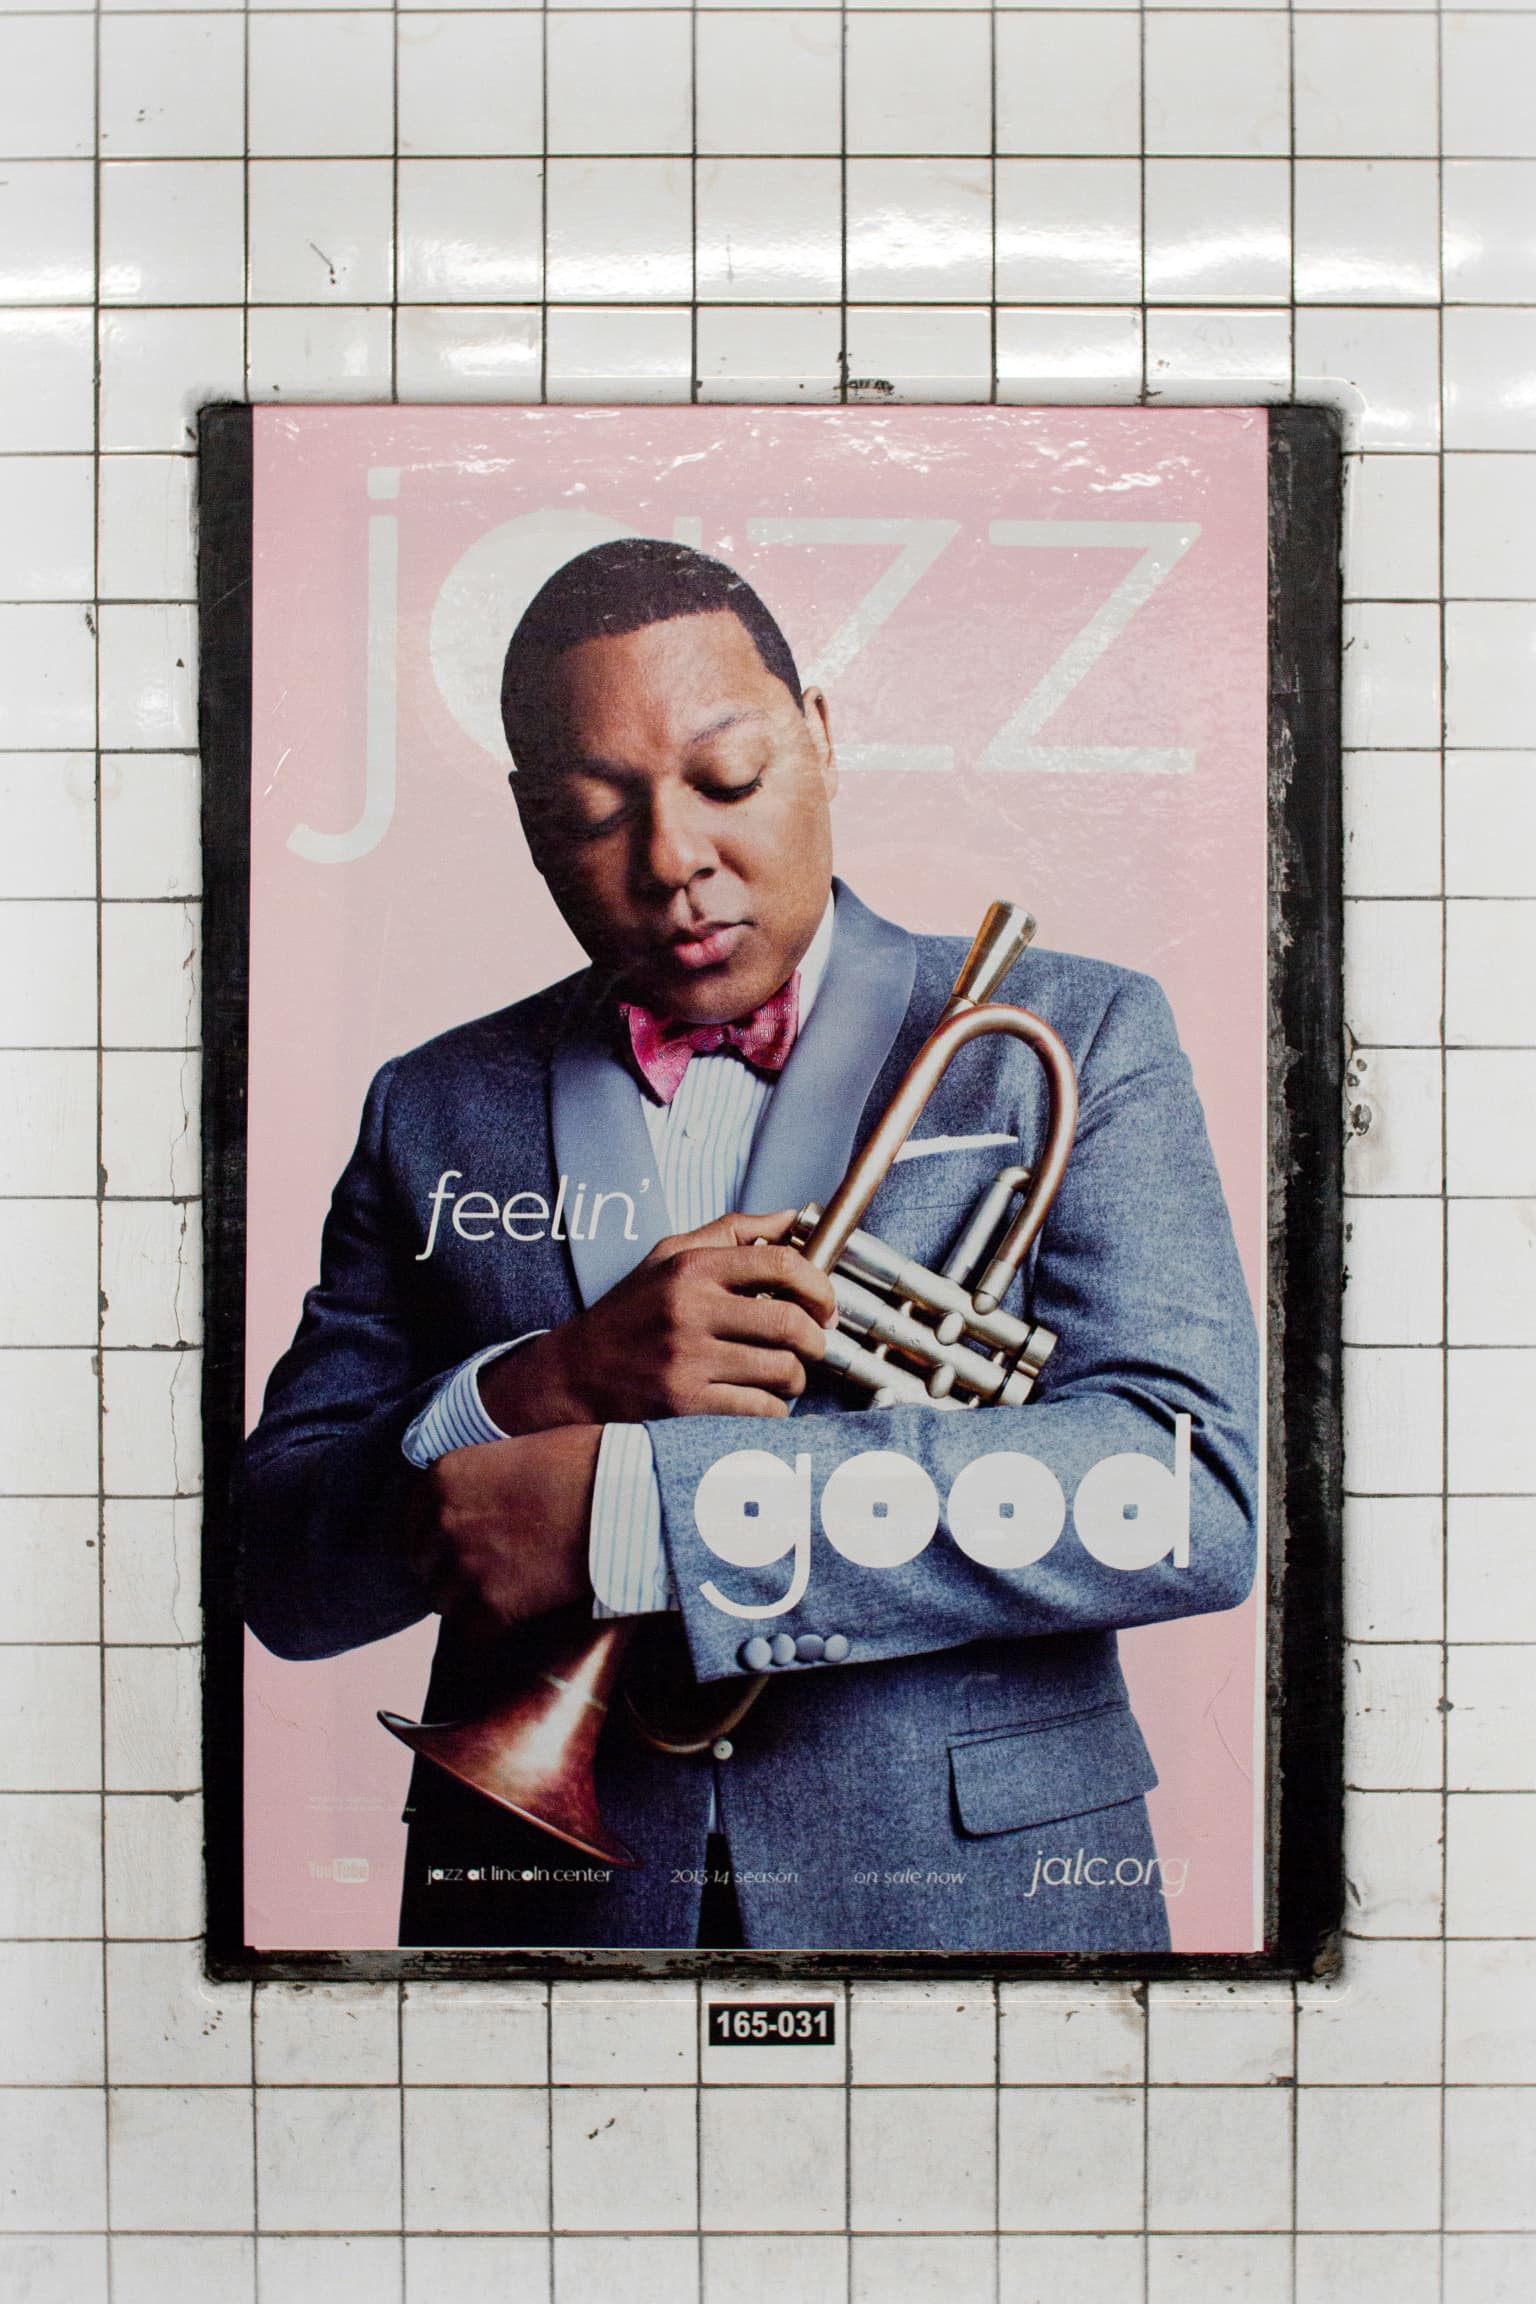 Jazz at Lincoln Center Feelin' Good Campaign